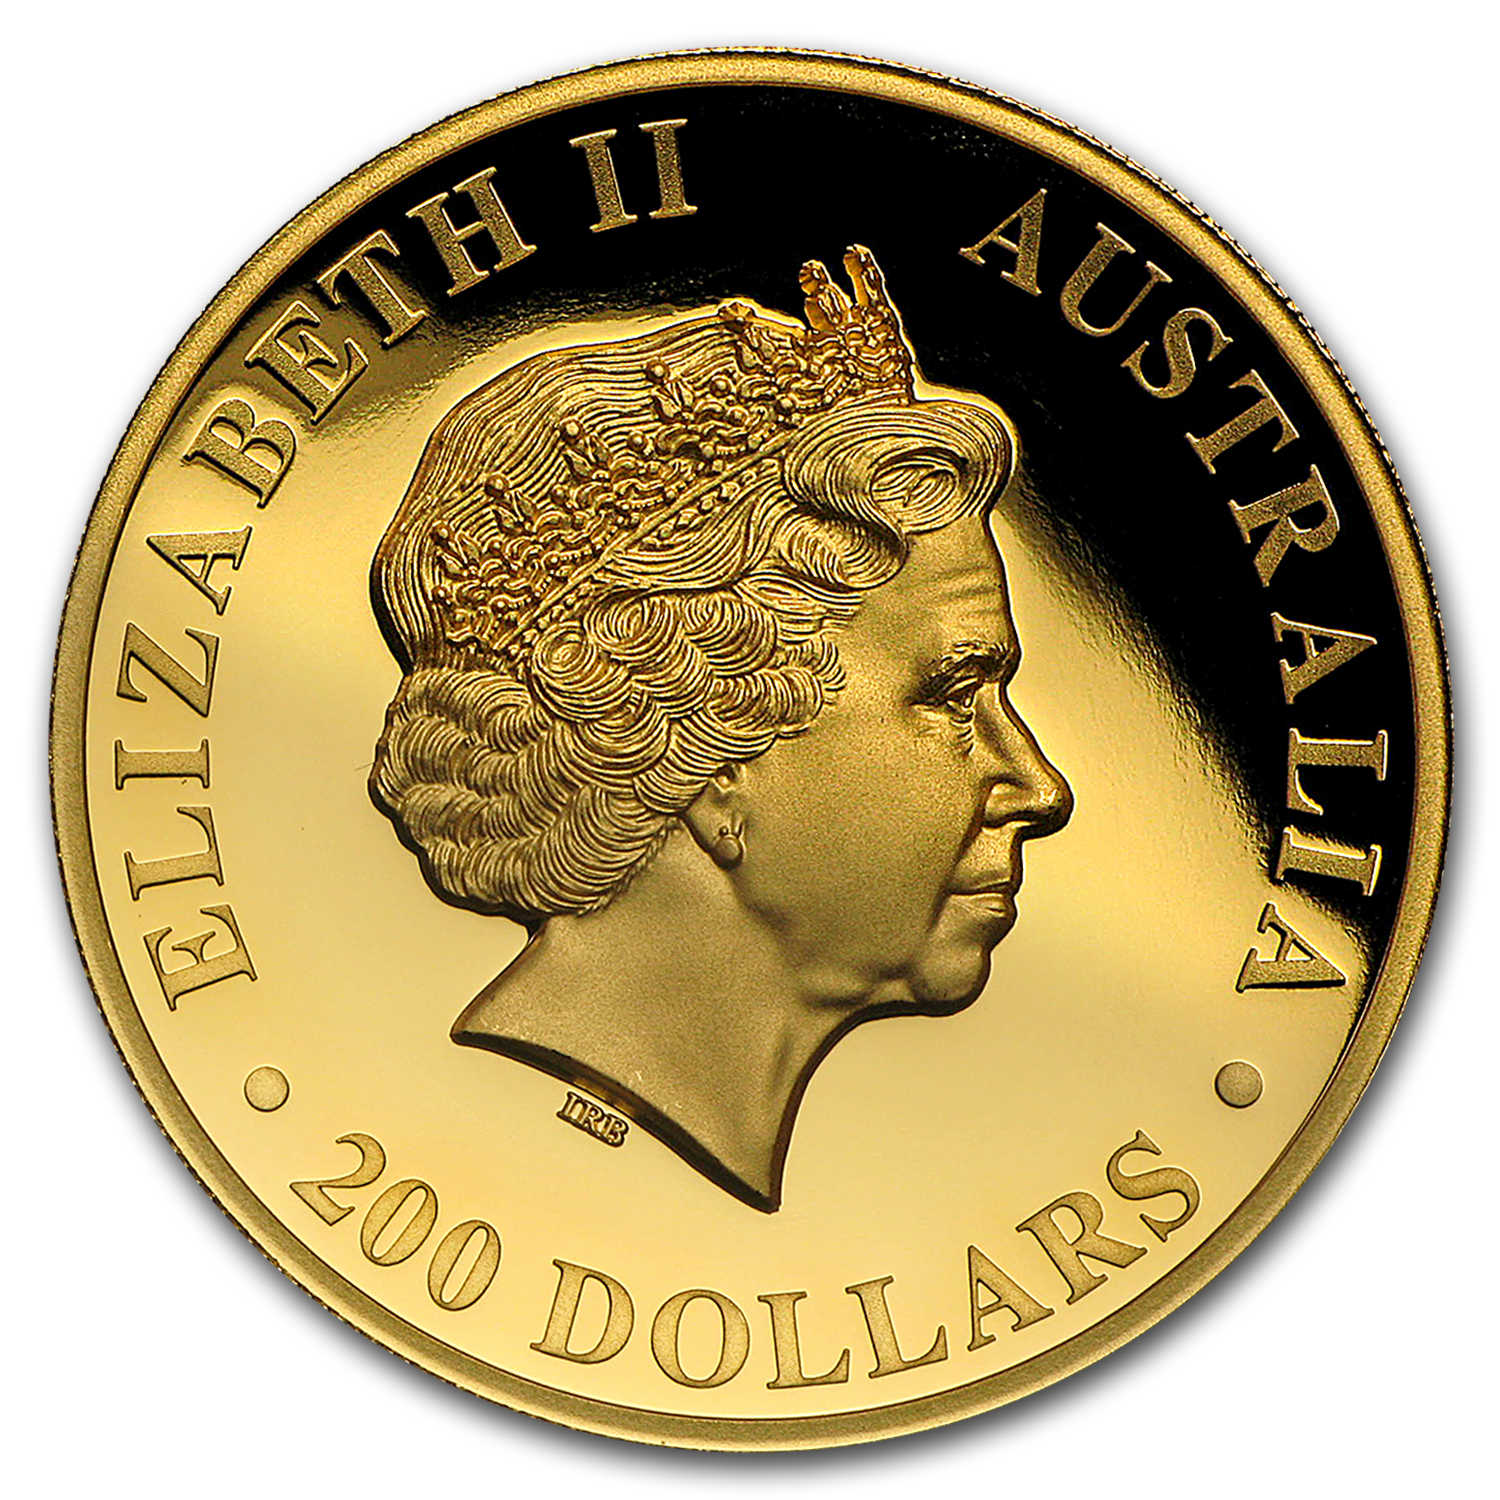 2016 Australia 2 oz Gold Koala Proof (High Relief, Box & COA)